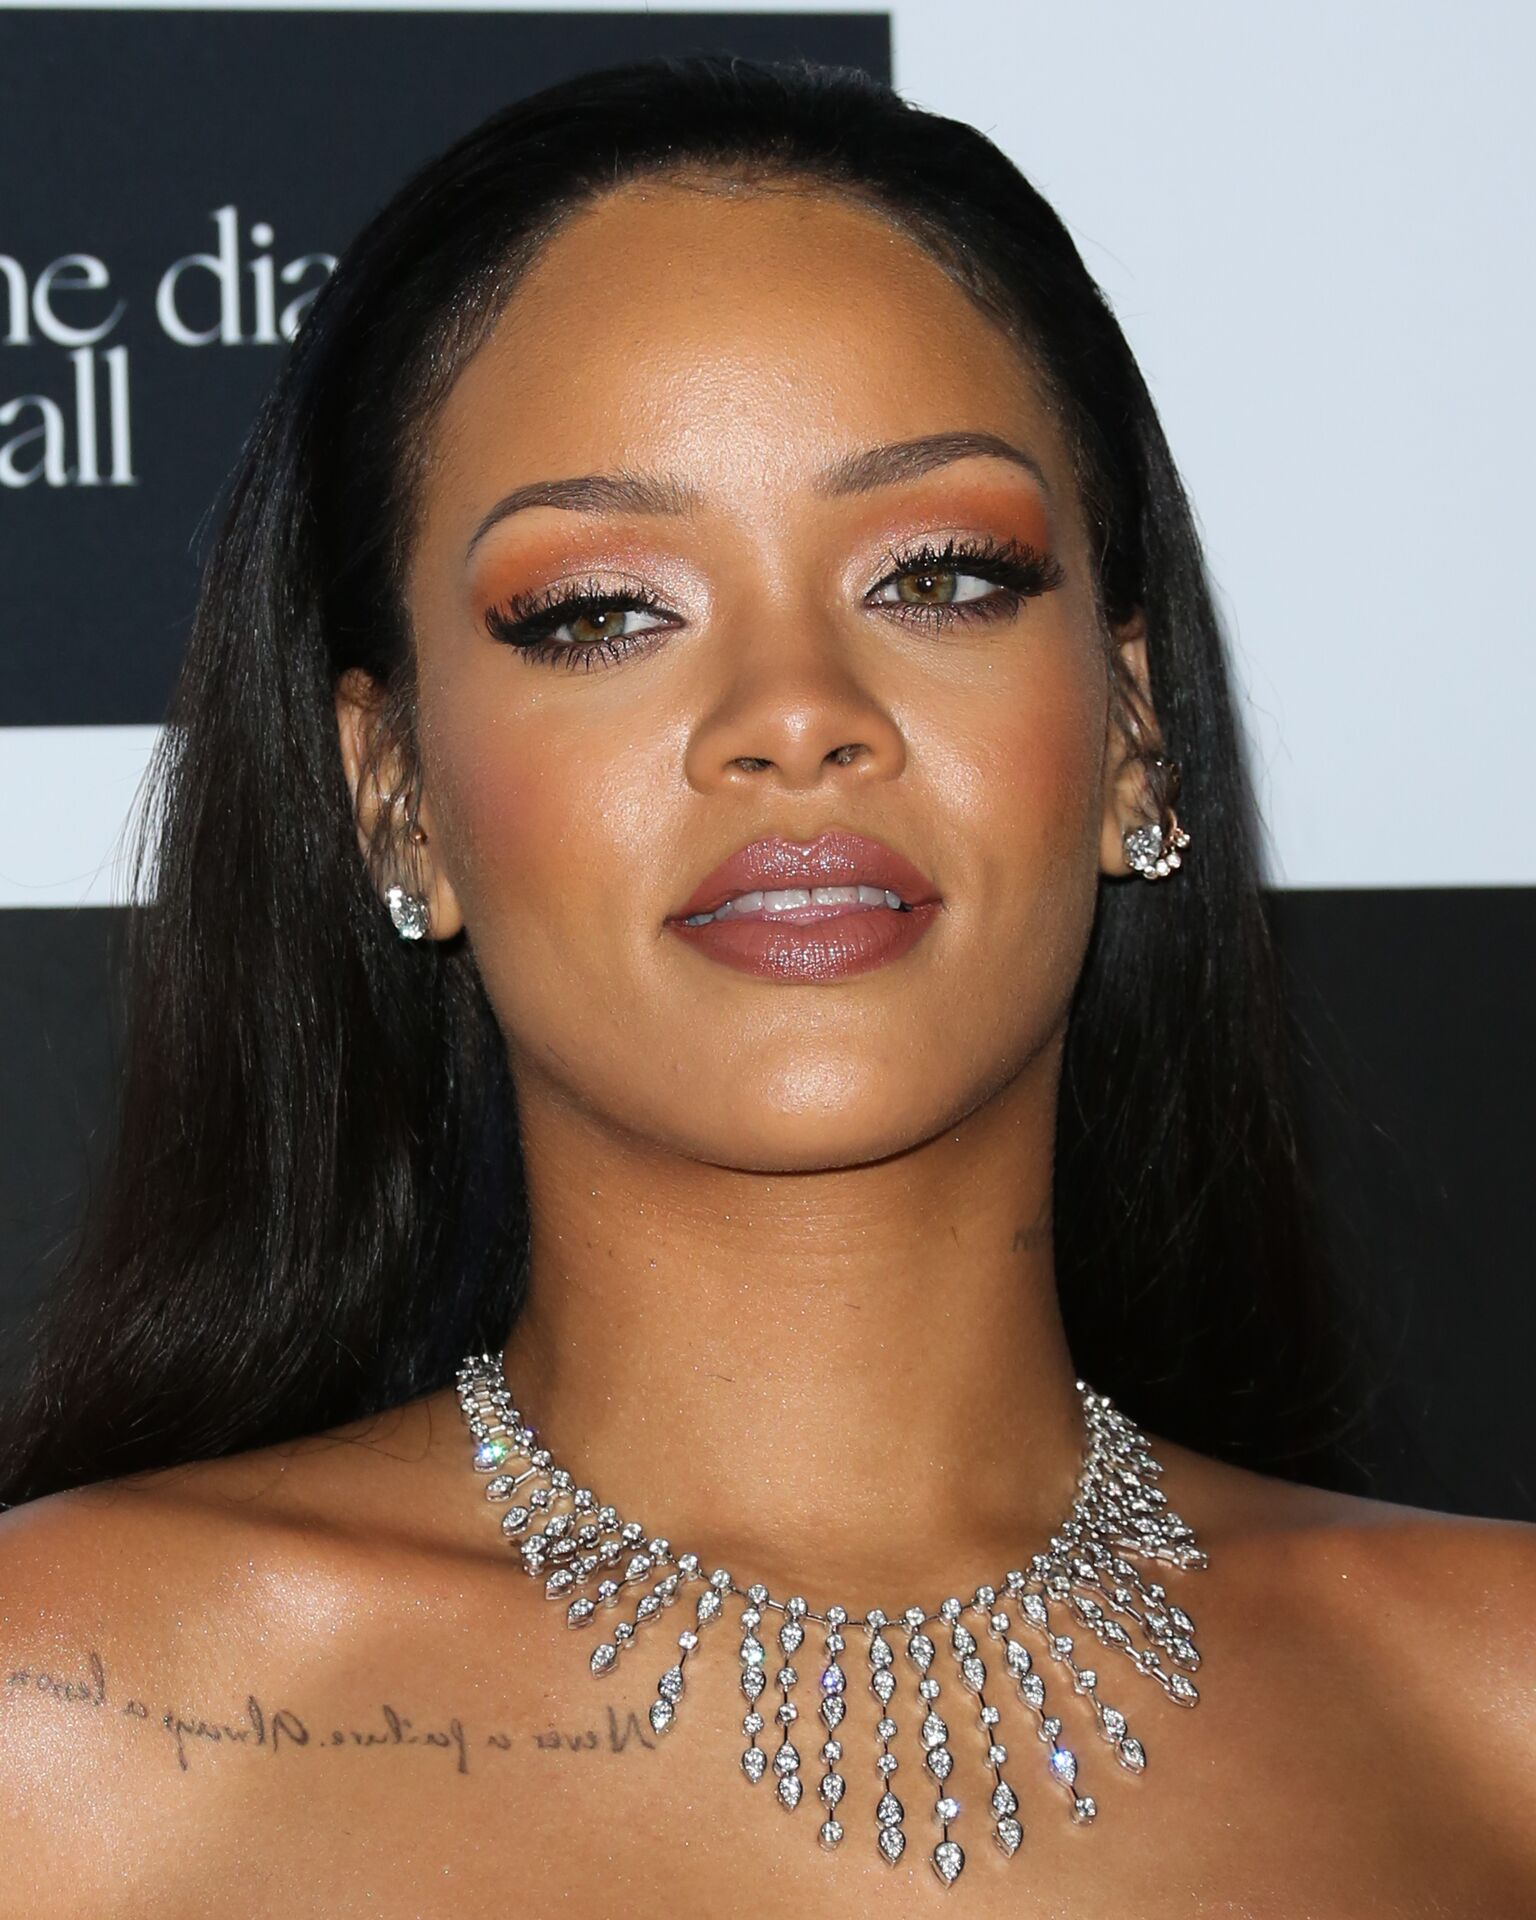 Image Credit: Getty Images / Singer and business mogul, Rihanna poses for a picture on the red carpet.